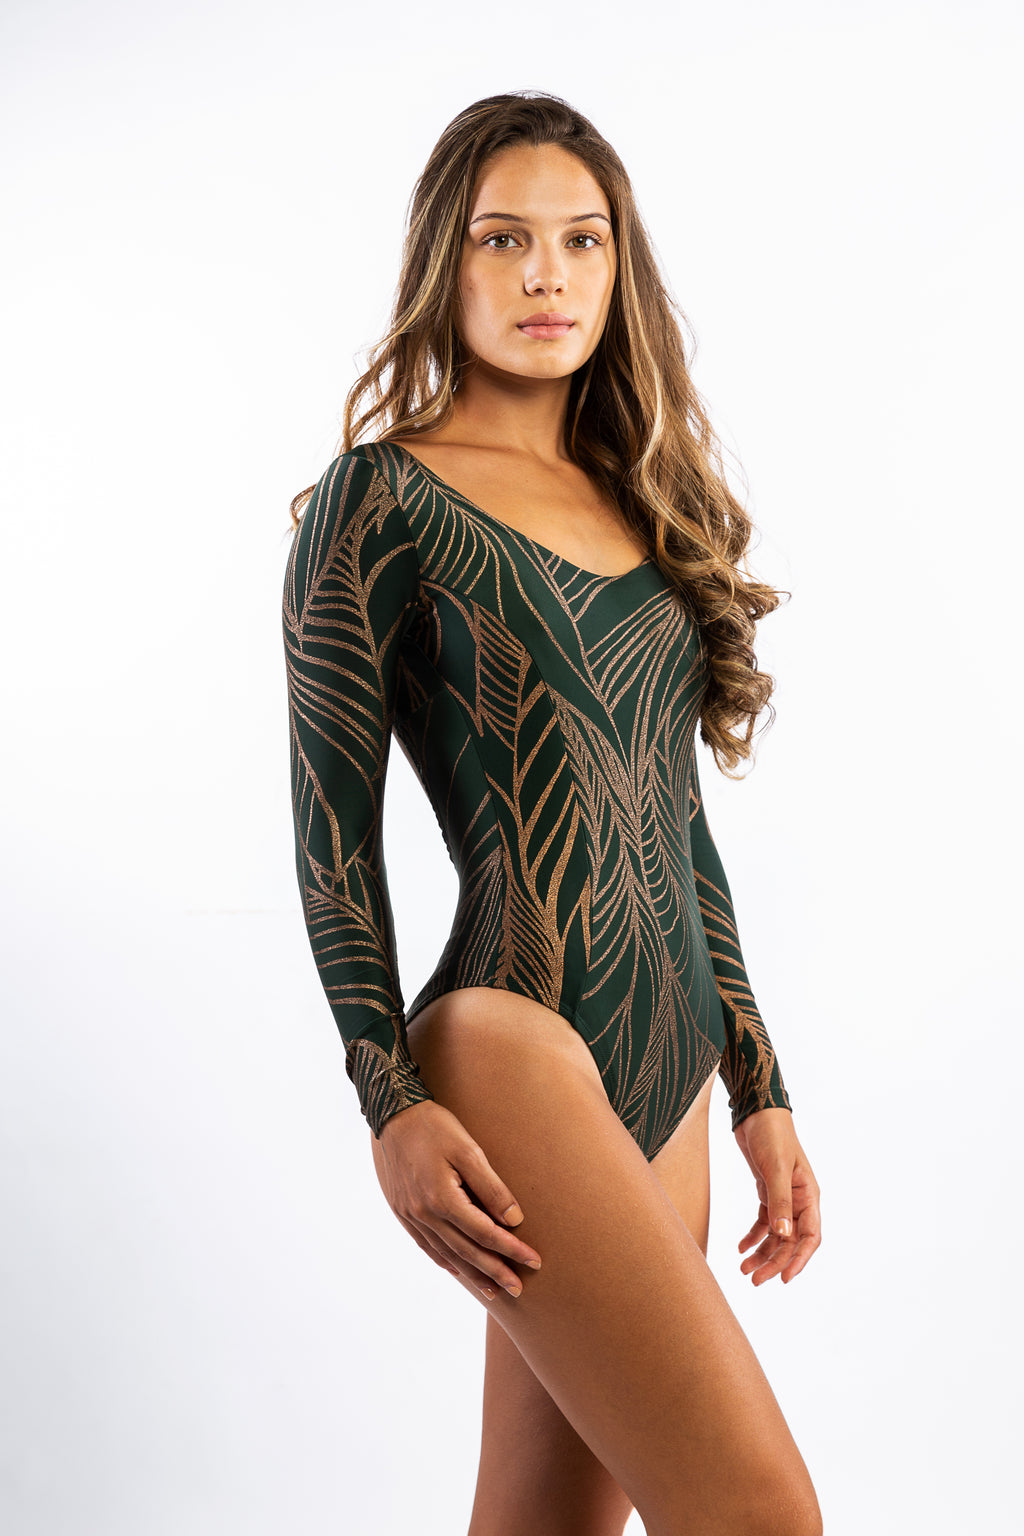 Green Polyamide body with details in Gold glitter